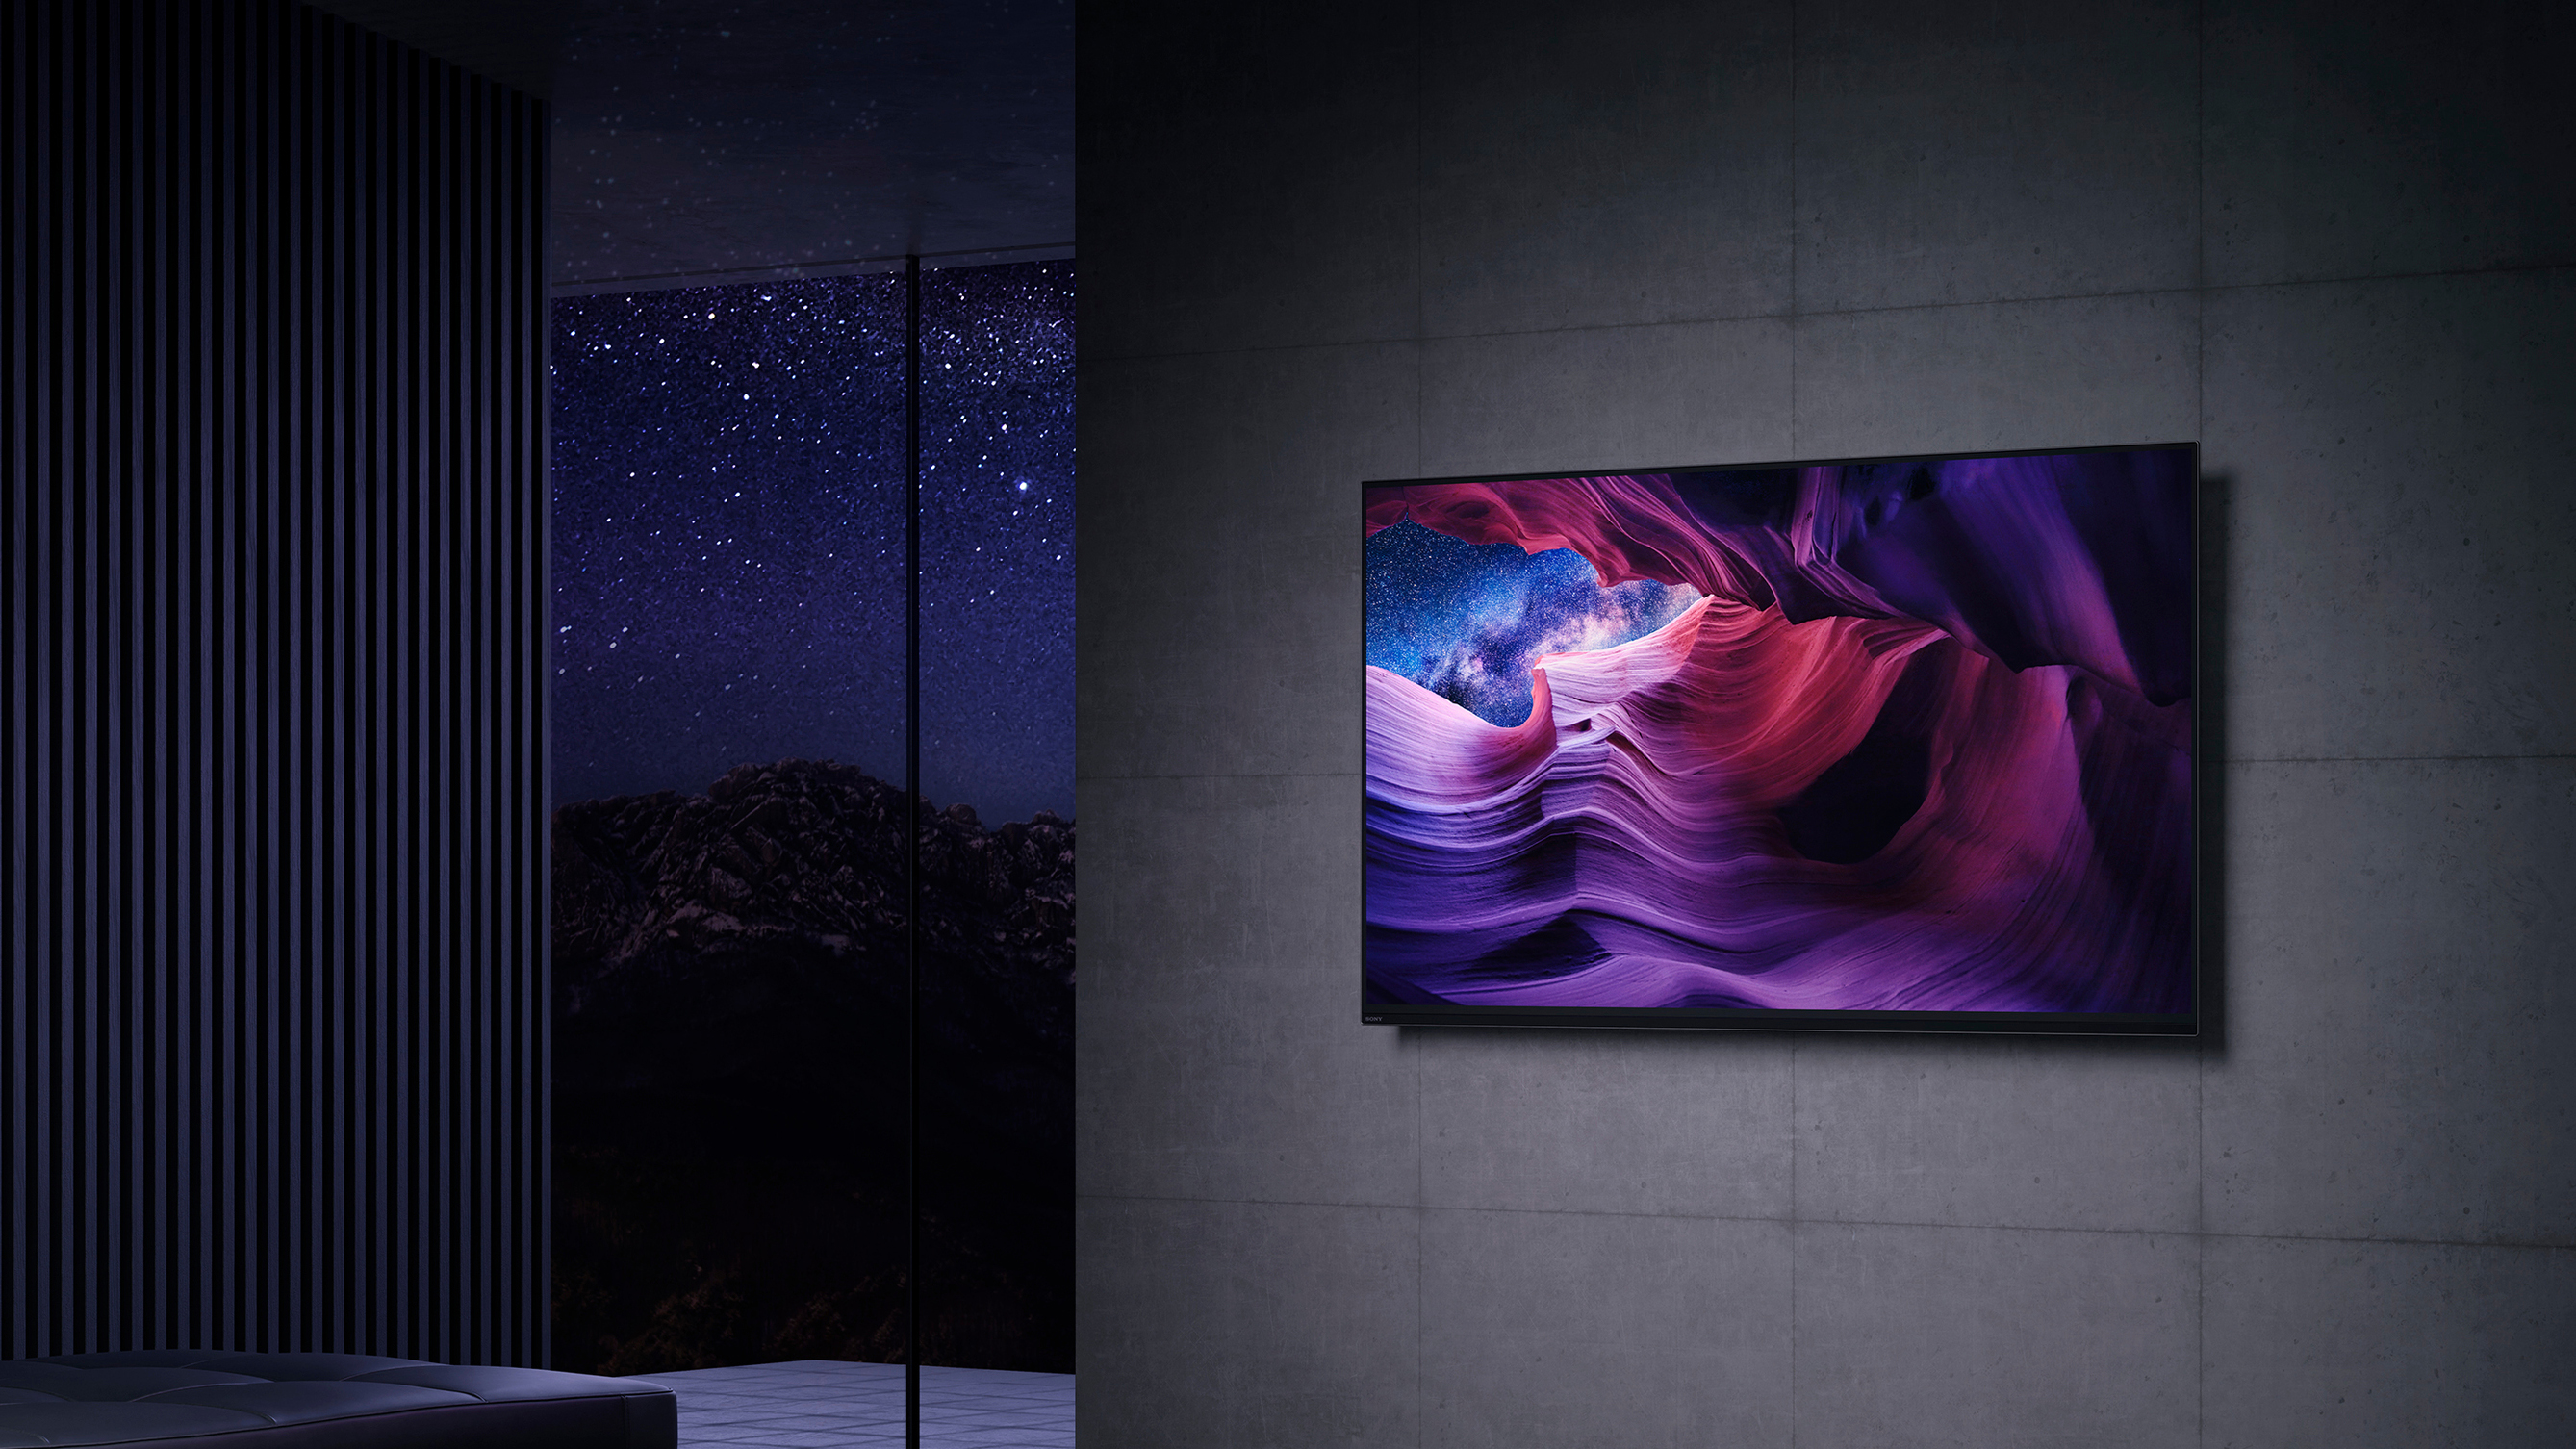 Sony OLED hanging on wall, showing purple cavern